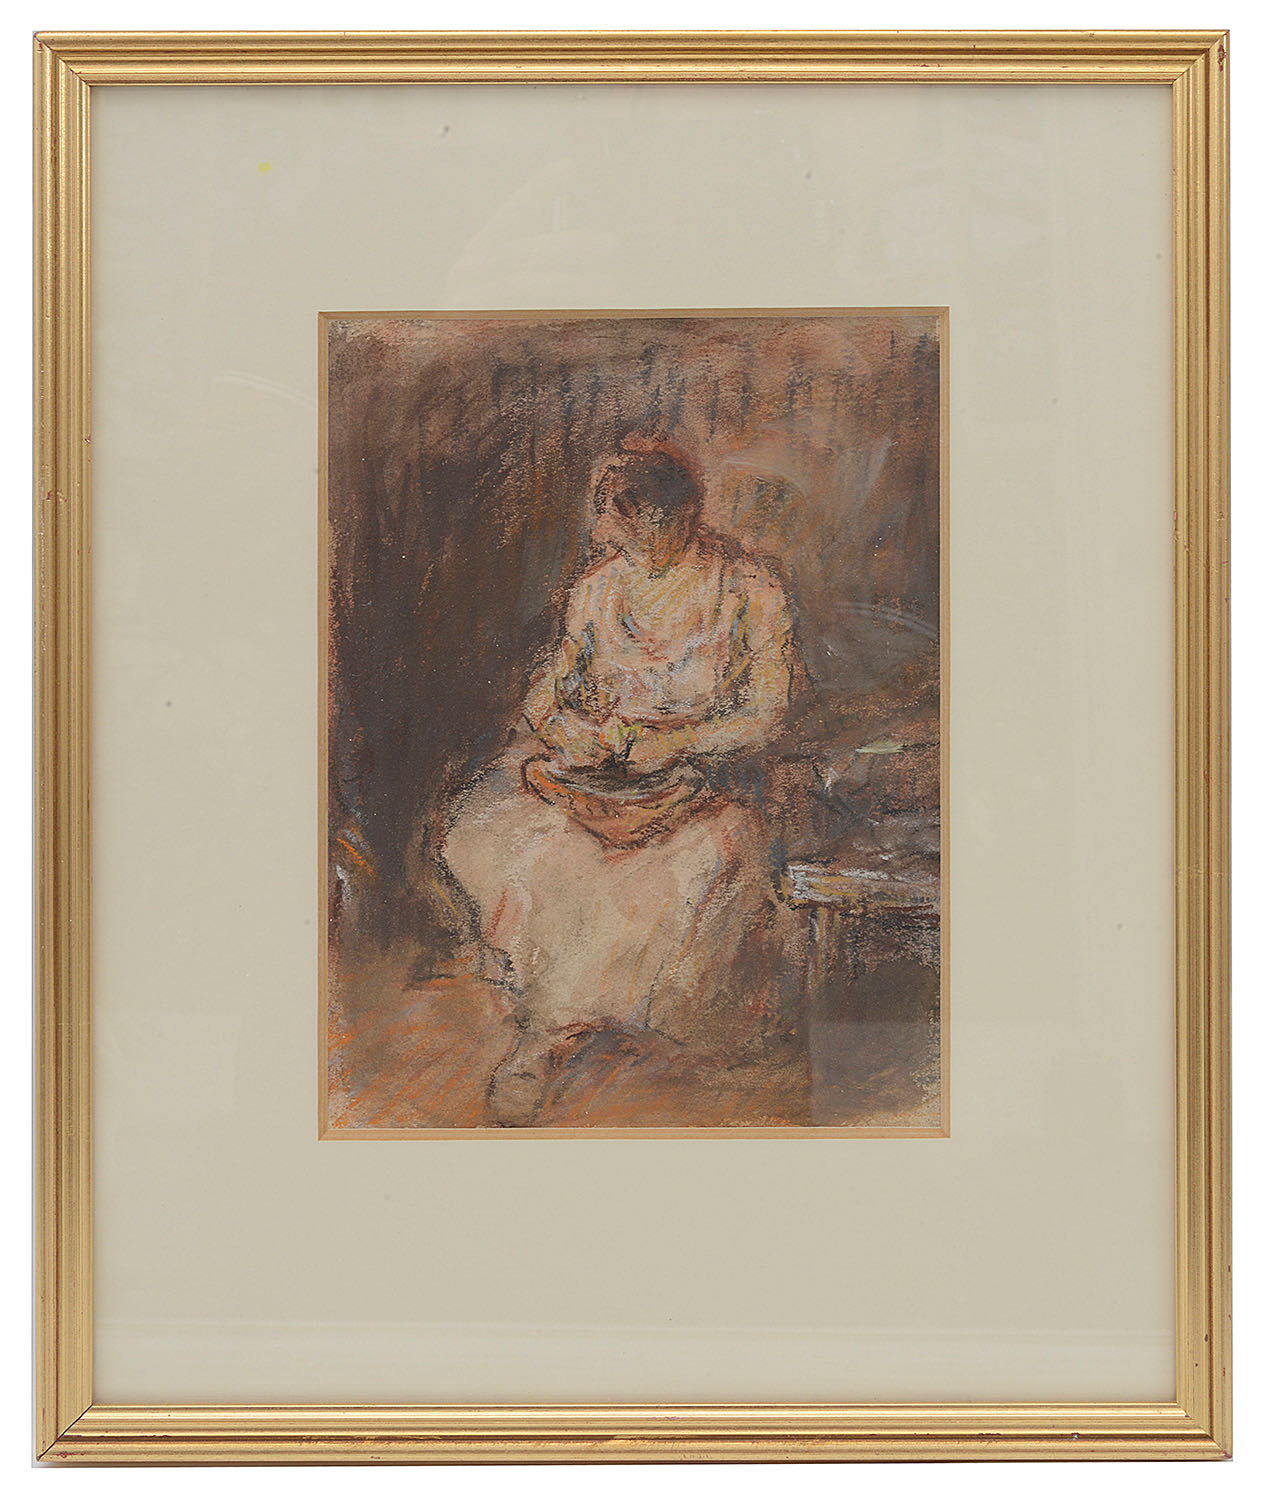 Lot 58 - Sholto Johnstone Douglas (Scot., 1871-1958) 'Woman in a kitchen', pastel